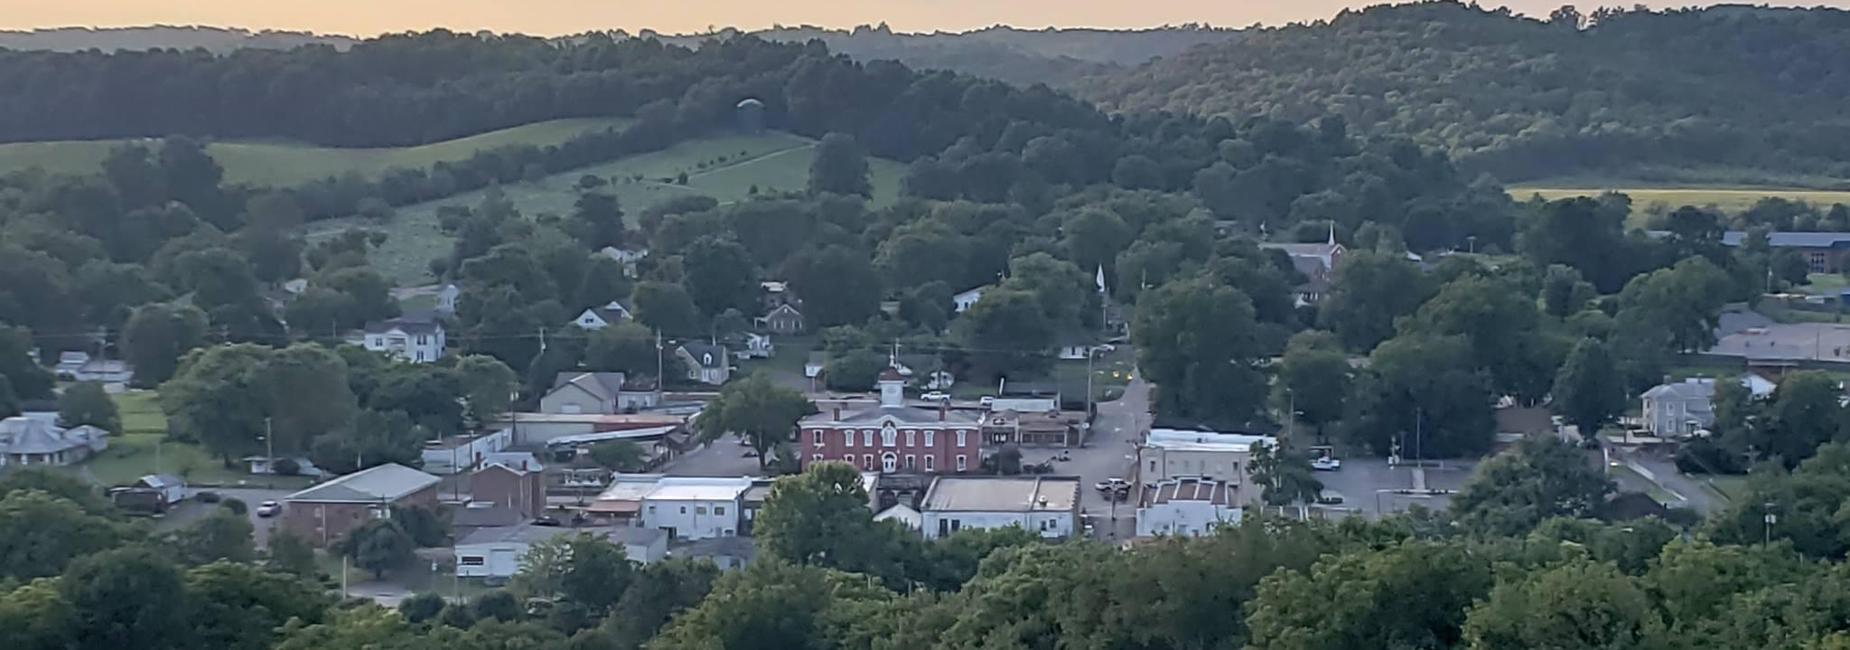 Overhead view of Lynchburg